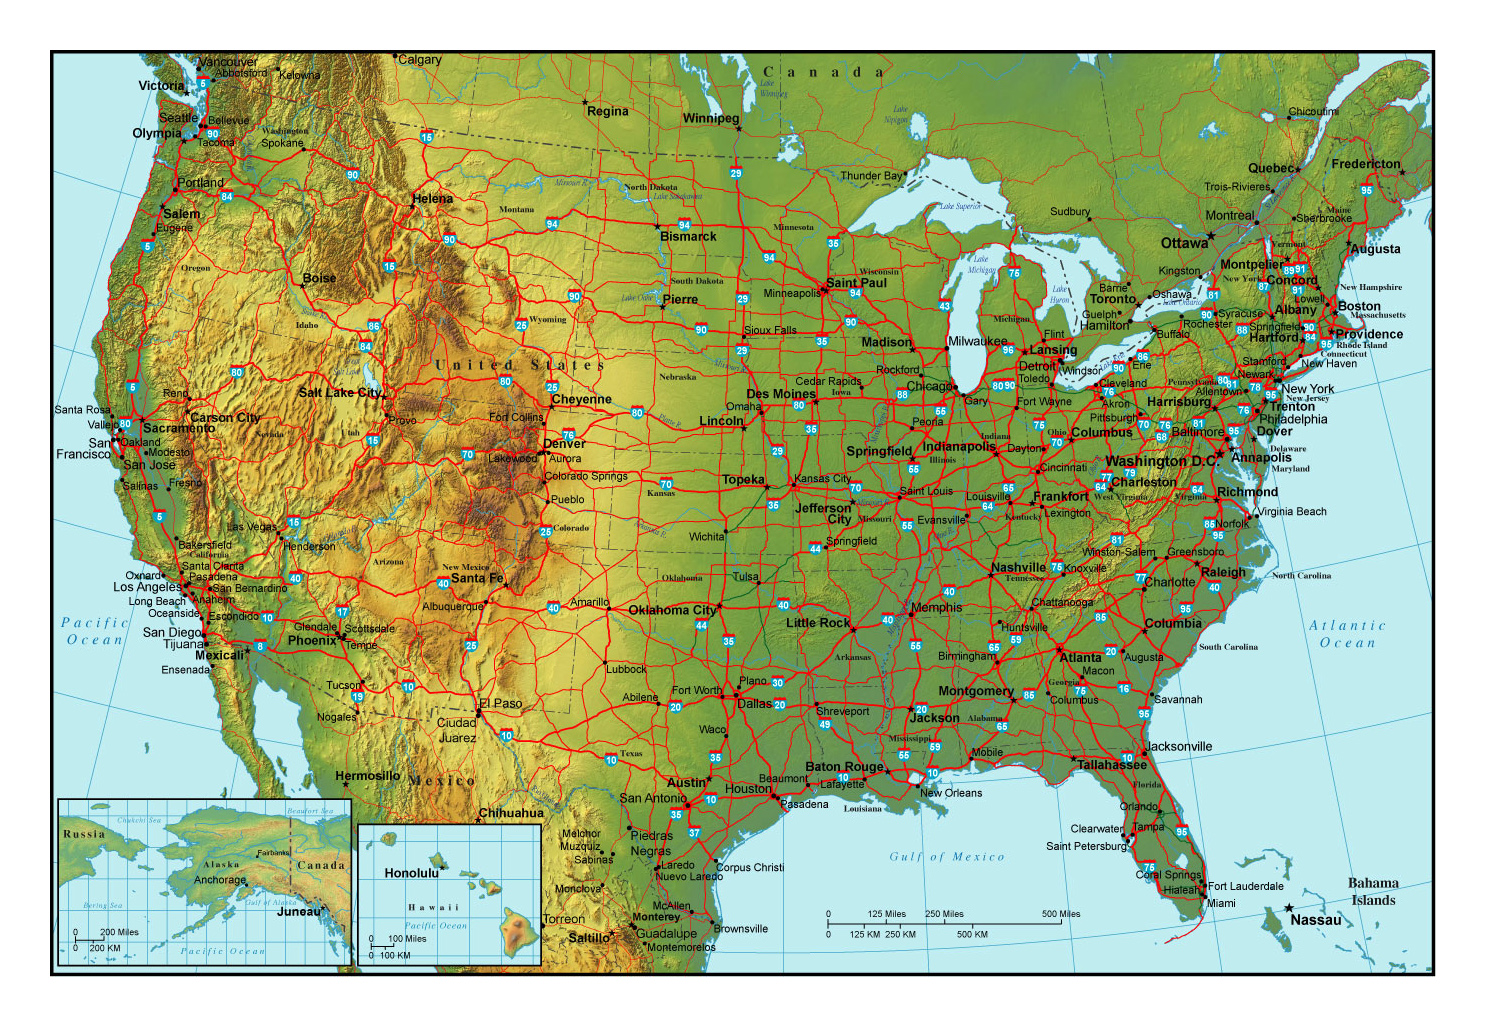 Topographical map of the USA with highways and major cities | USA